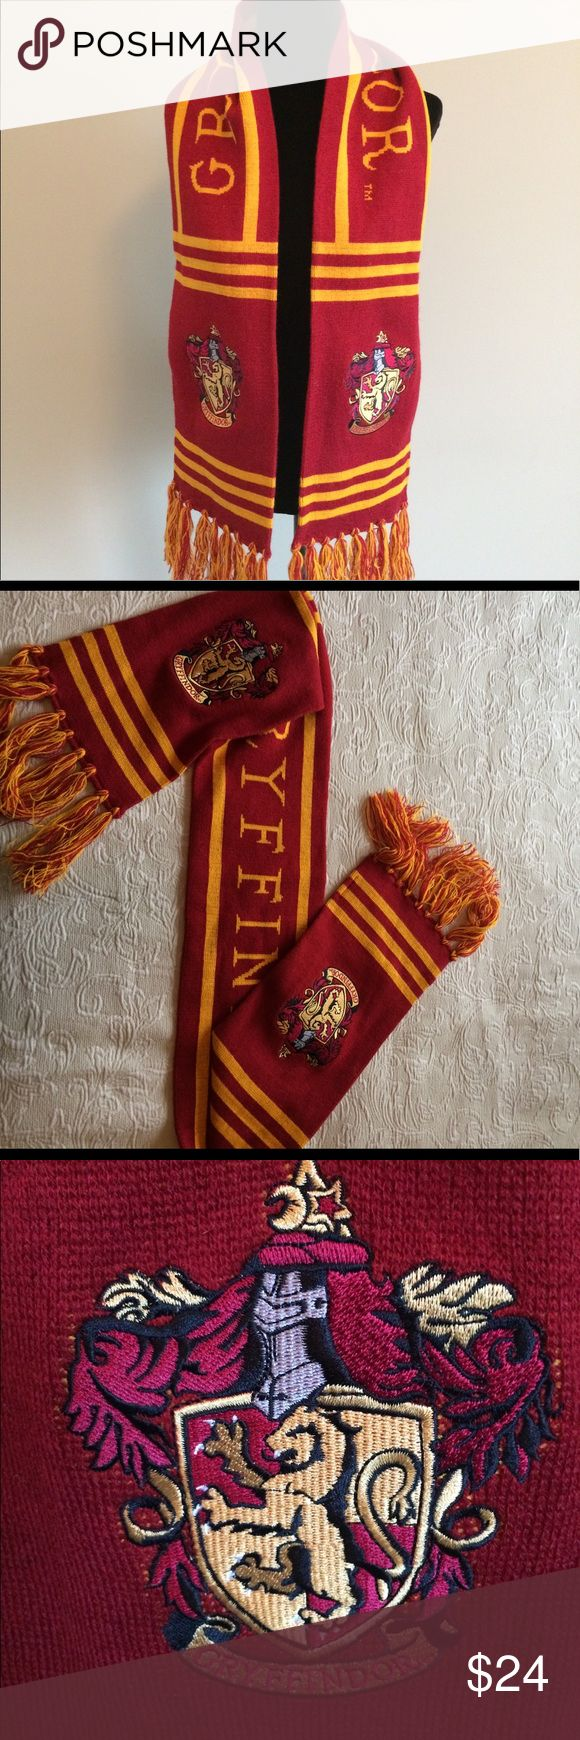 Harry Potter Gryffindor scarf! Harry Potter Gryffindor red and gold scarf! Like new condition. Harry Potter Accessories Scarves & Wraps